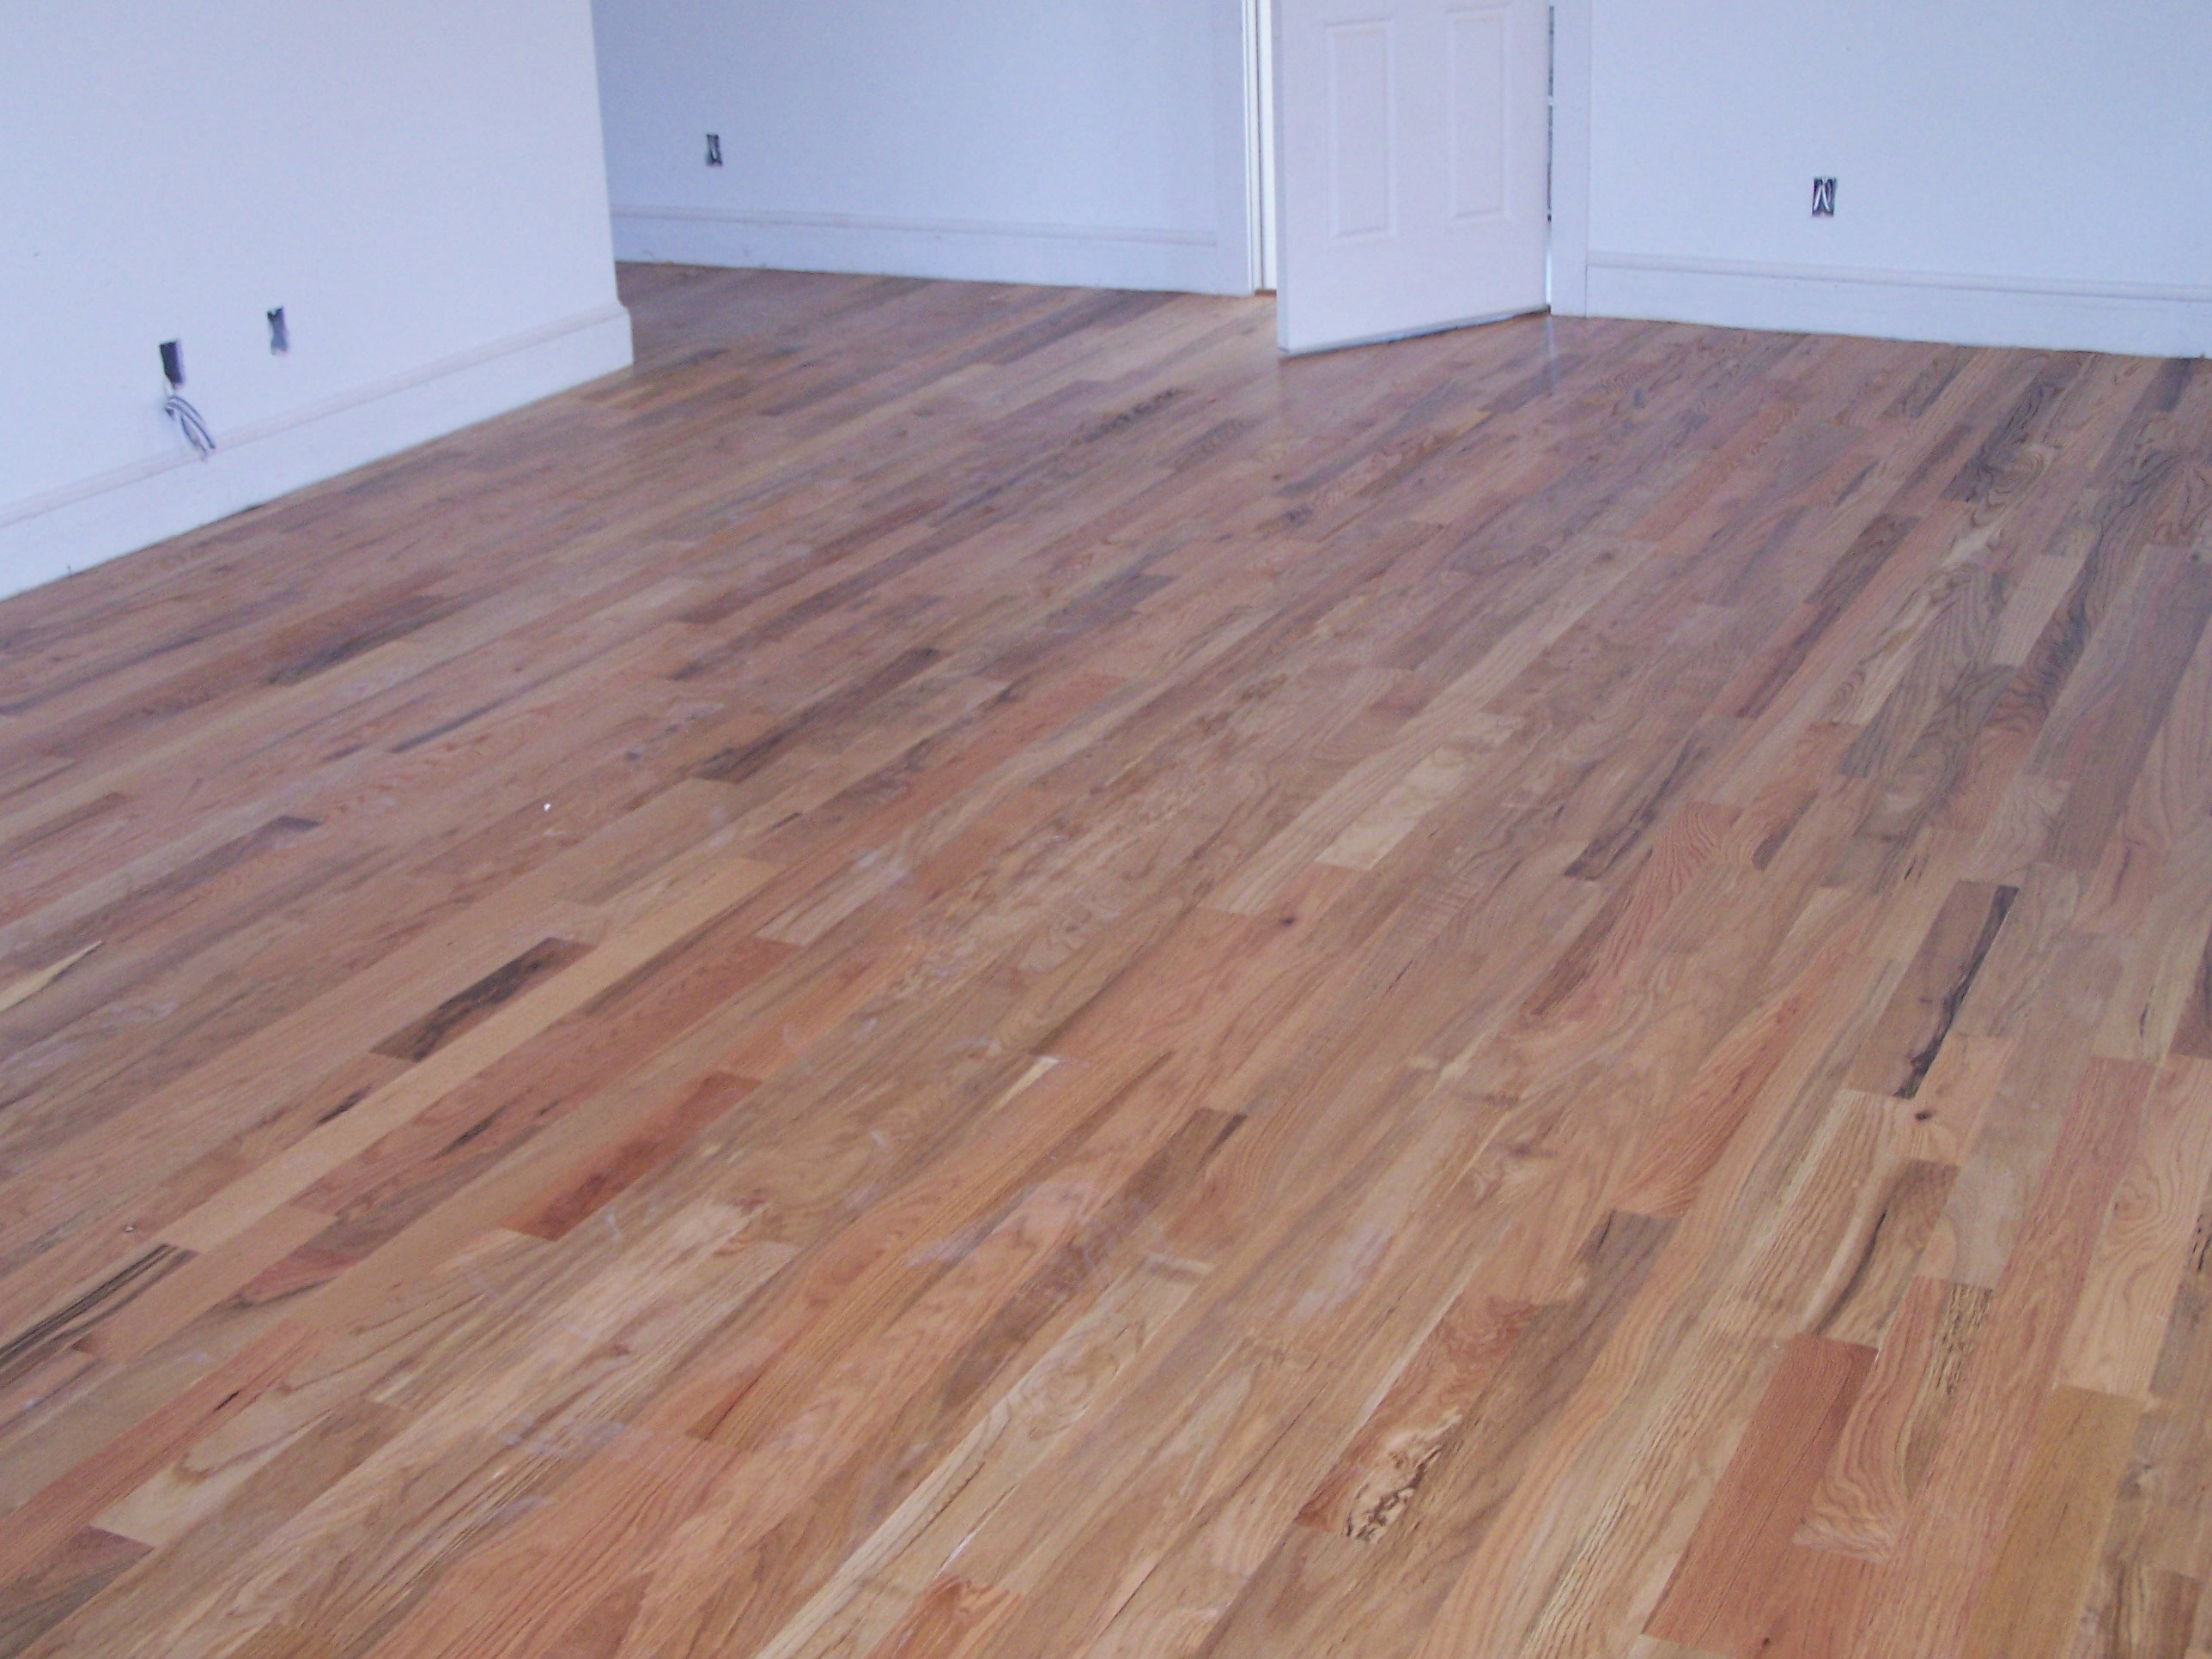 hardwood flooring depot reviews of 18 luxury home depot hardwood floors collection dizpos com with home depot hardwood floors best of natural accent hardwood floors is blogging natural wood floor images